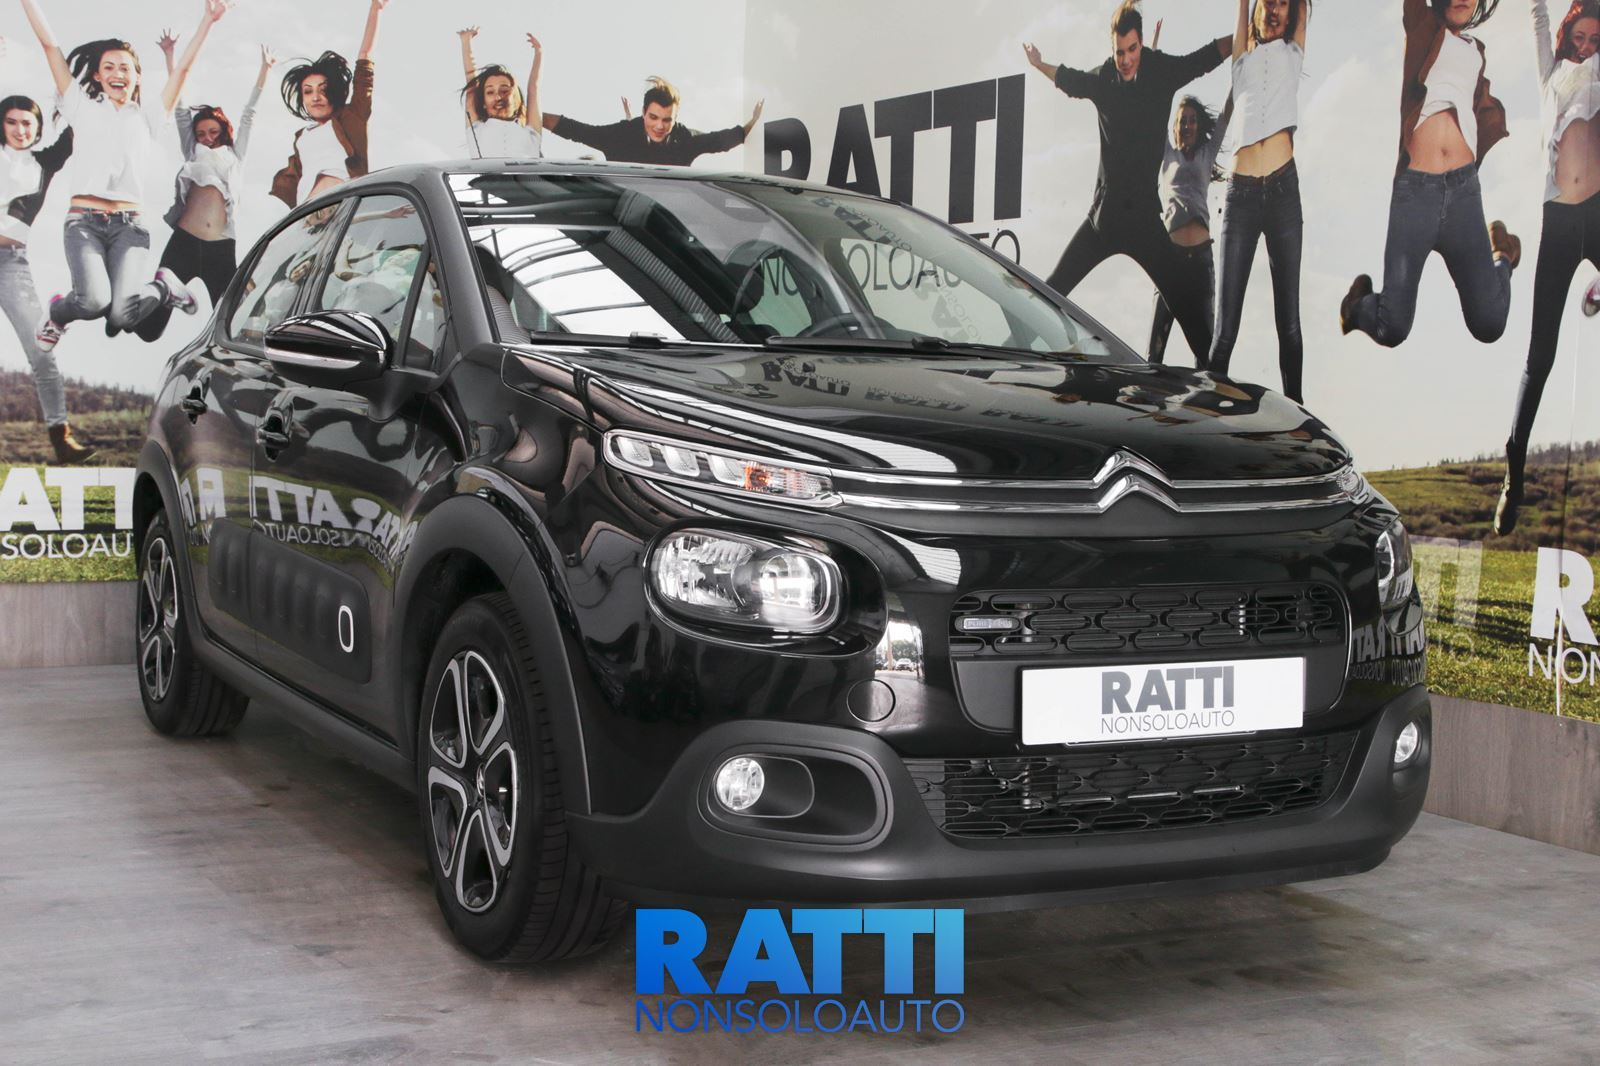 CITROEN C3 BlueHDi 1.6 75CV S&S Shine Night Black  cambio Manuale Diesel Aziendale berlina due volumi 5 porte 5 posti EURO 6